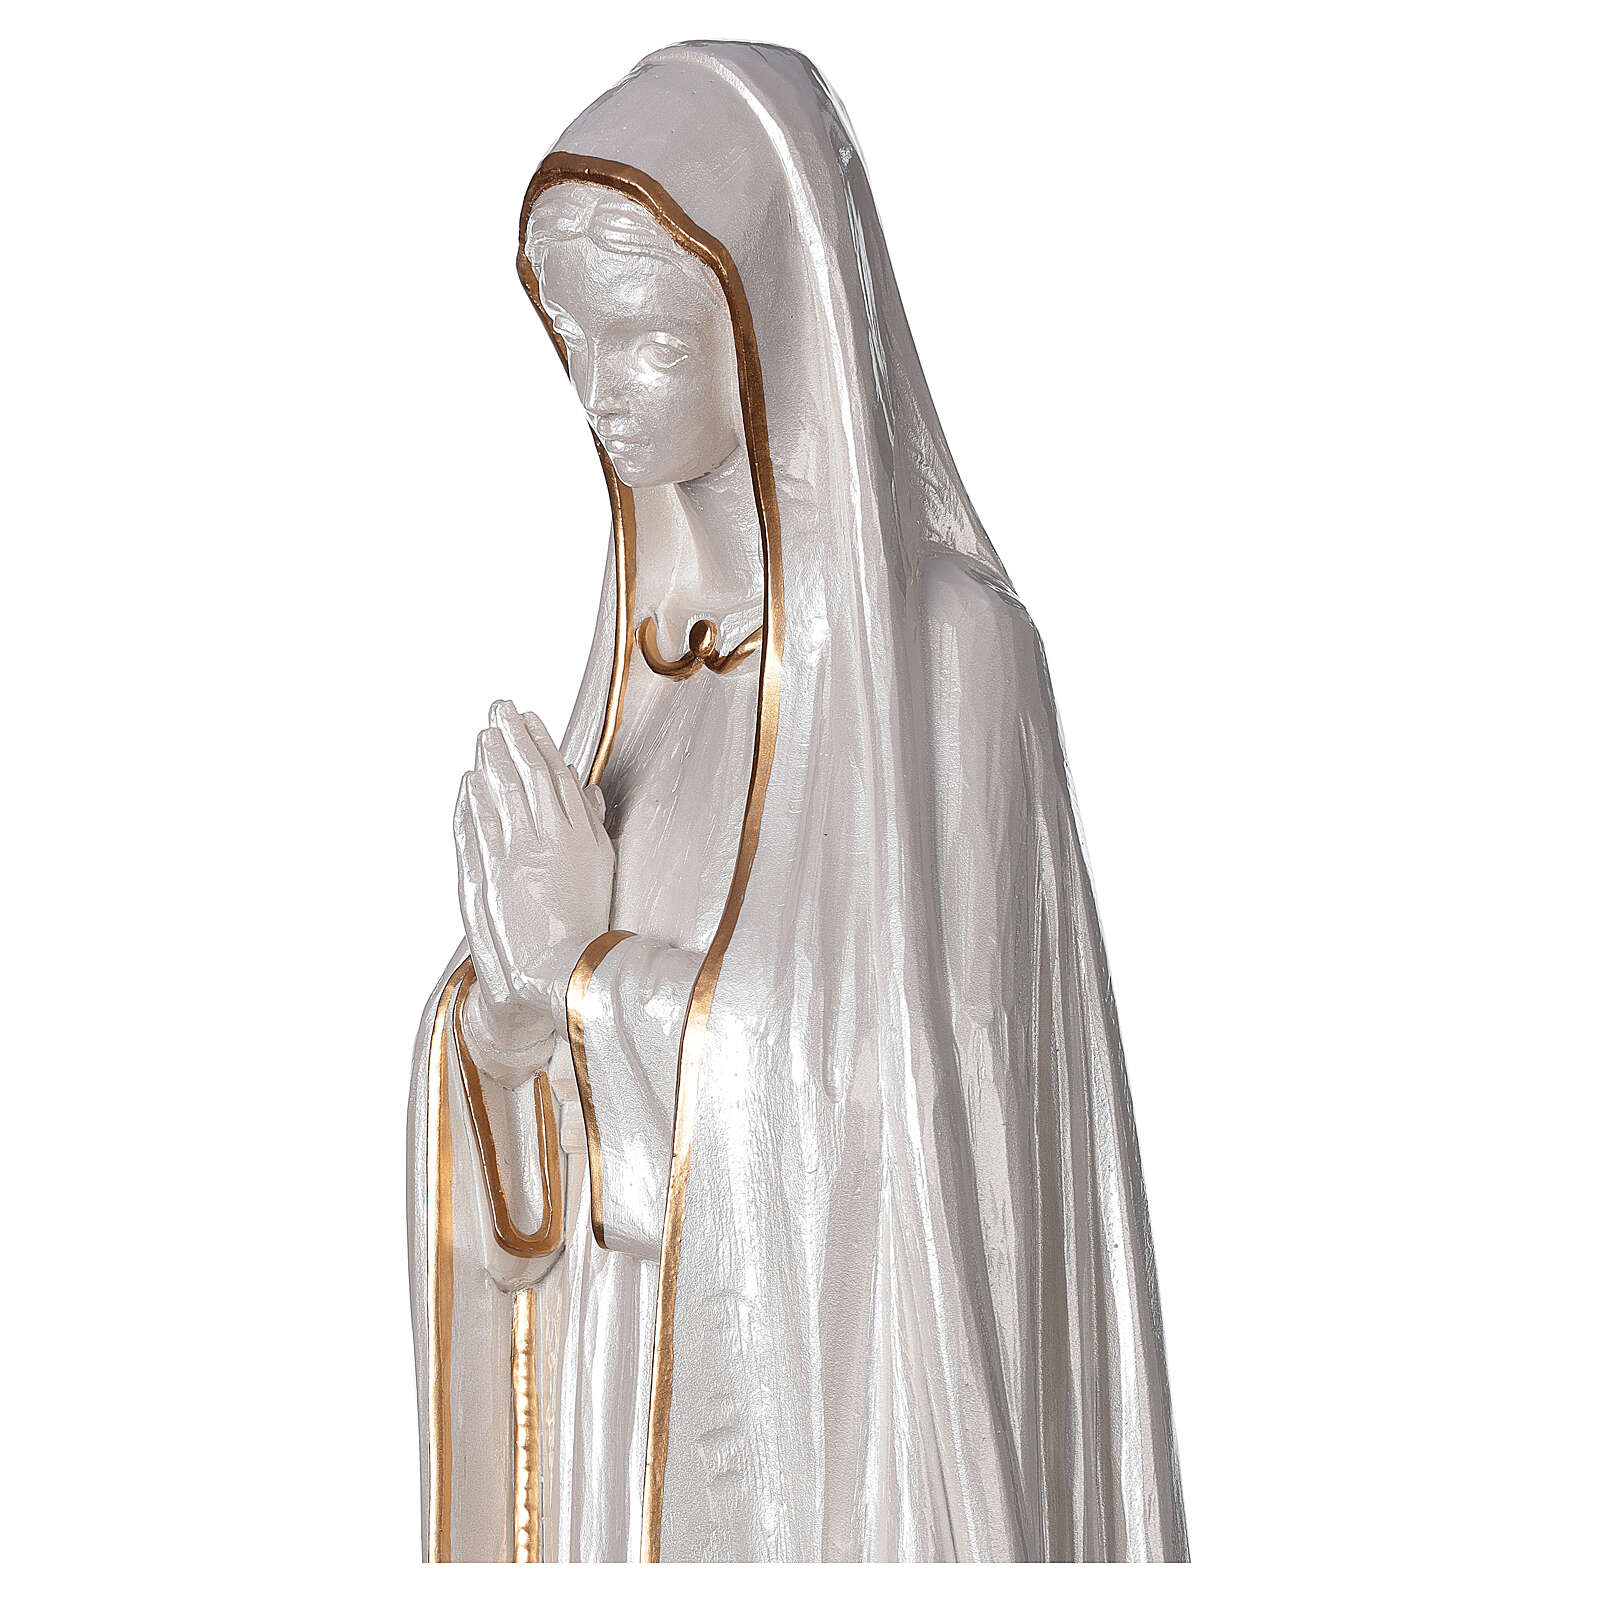 Our Lady of Fatima statue marble dust finish mother of pearl gold 60 cm 4